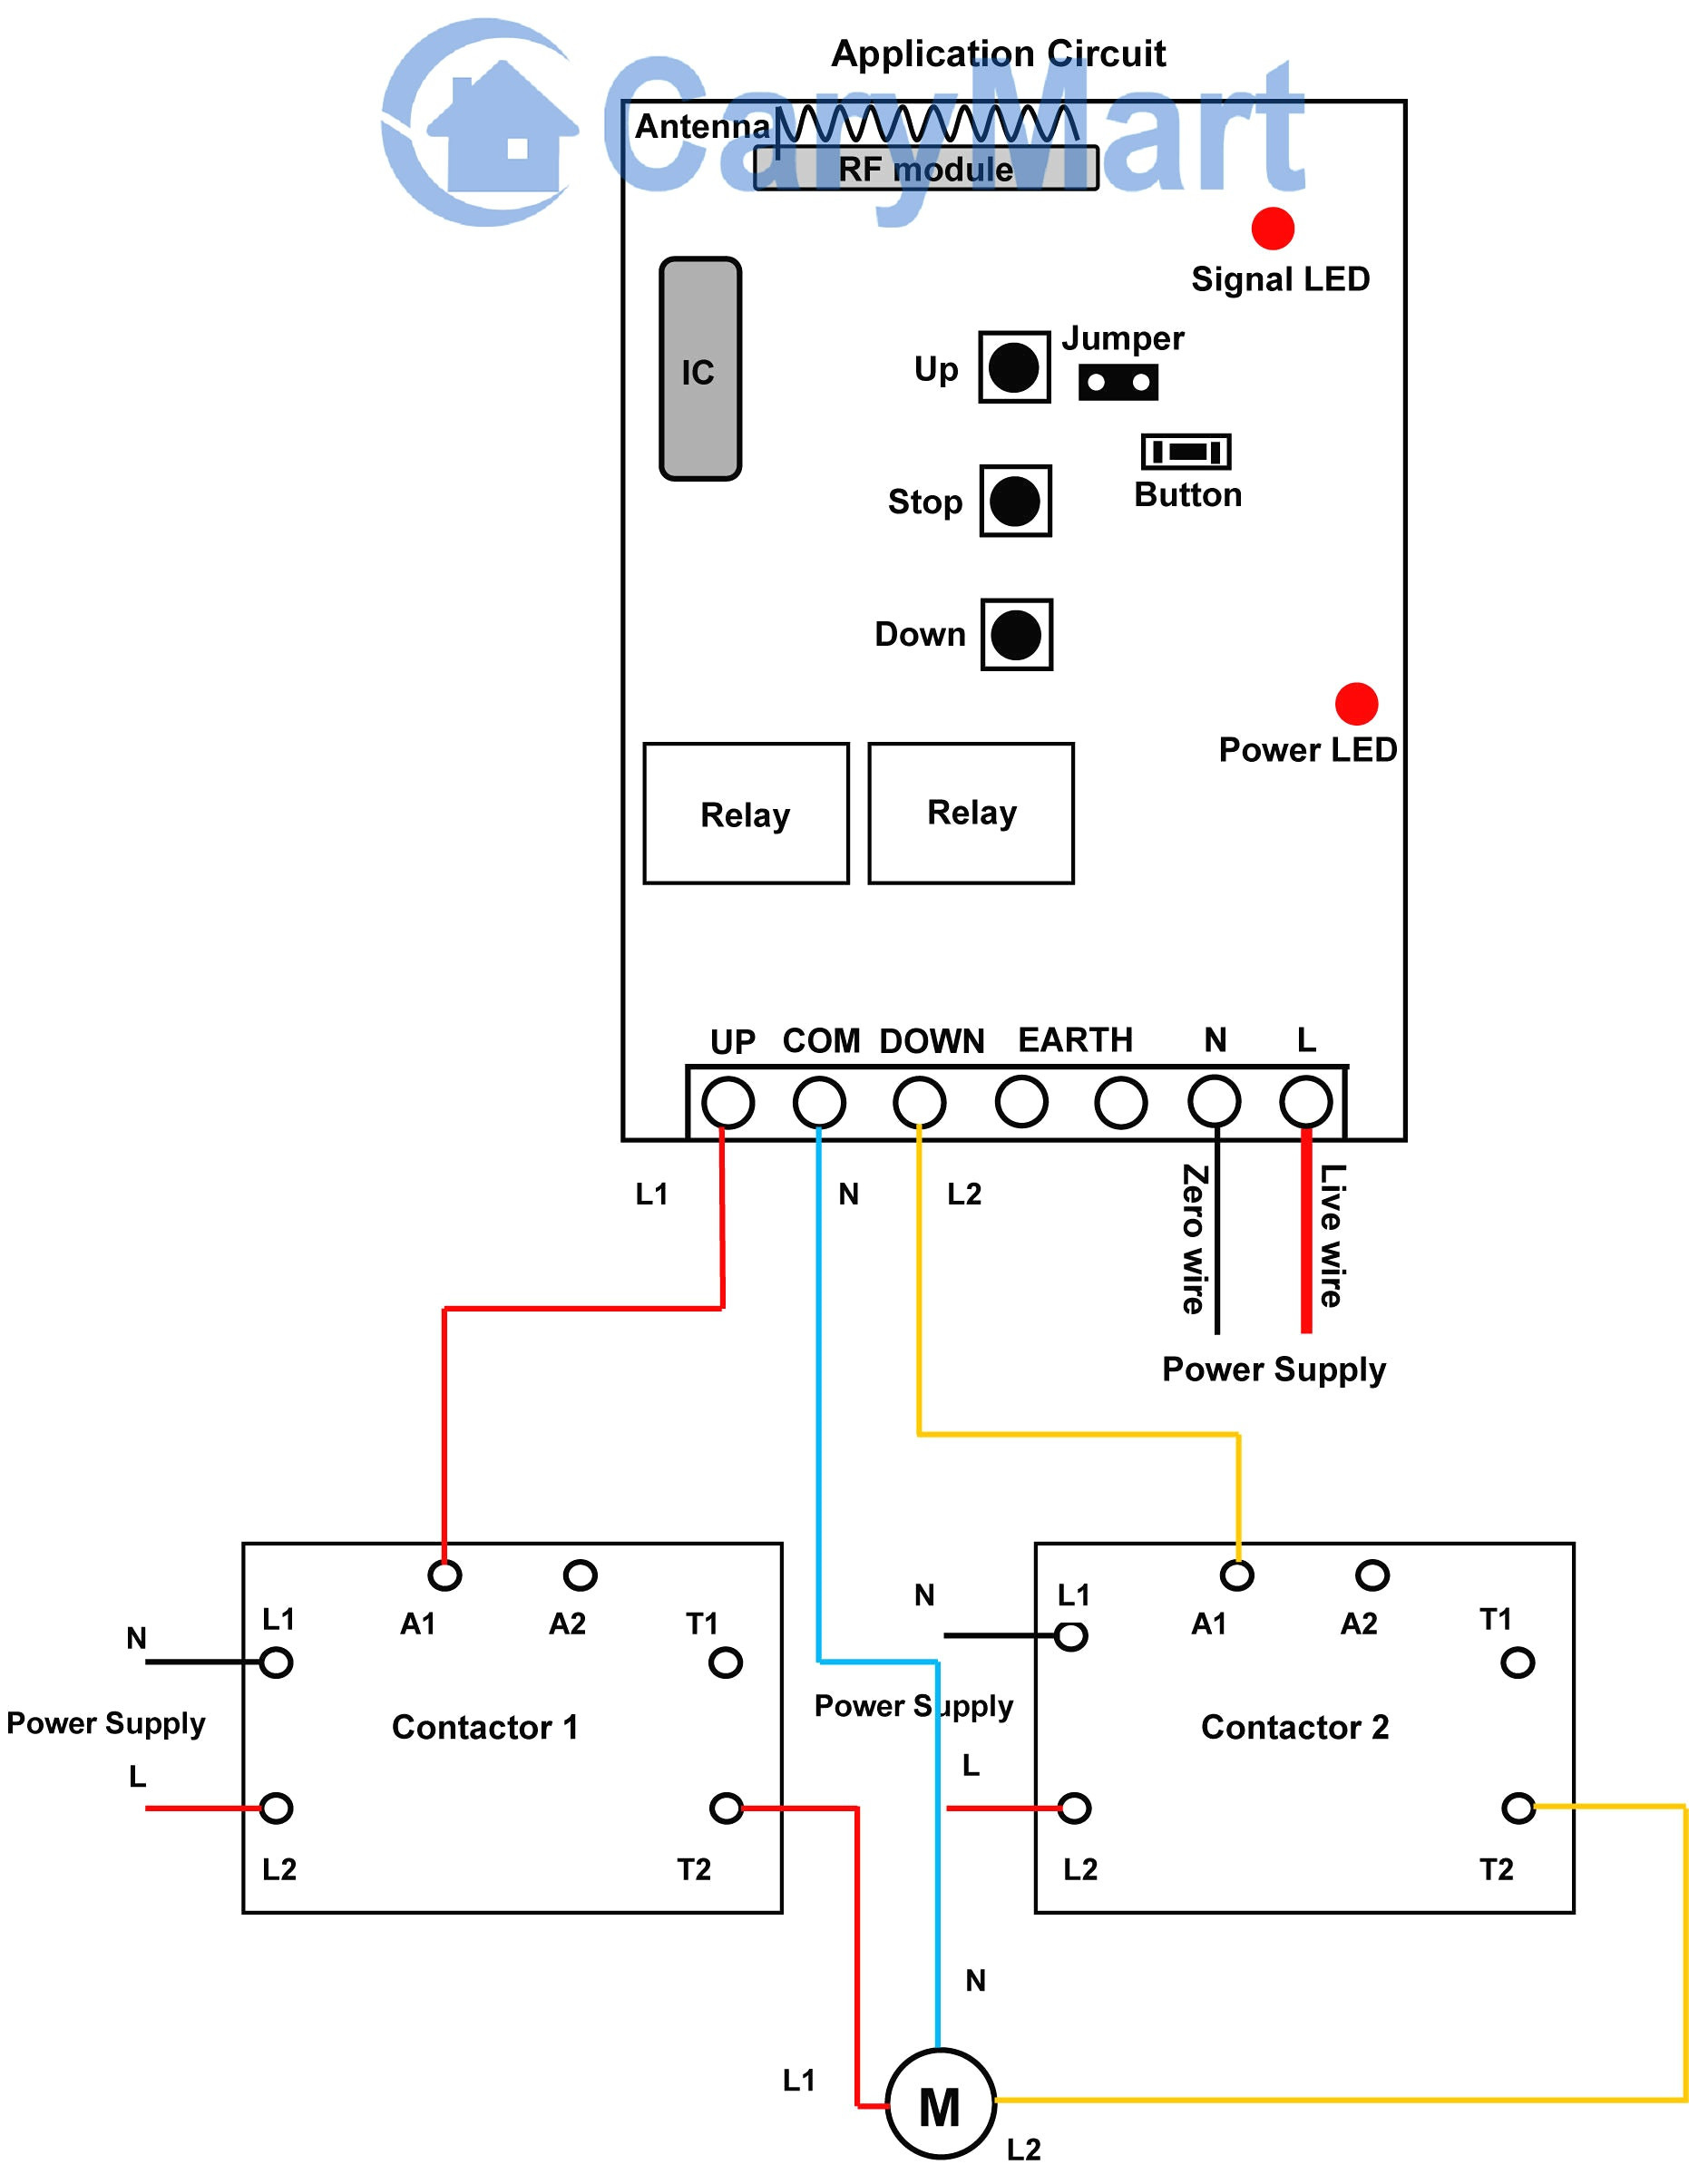 hight resolution of a1 a2 contactor wiring diagram wiring diagram technic contactor wiring diagram a1 a2